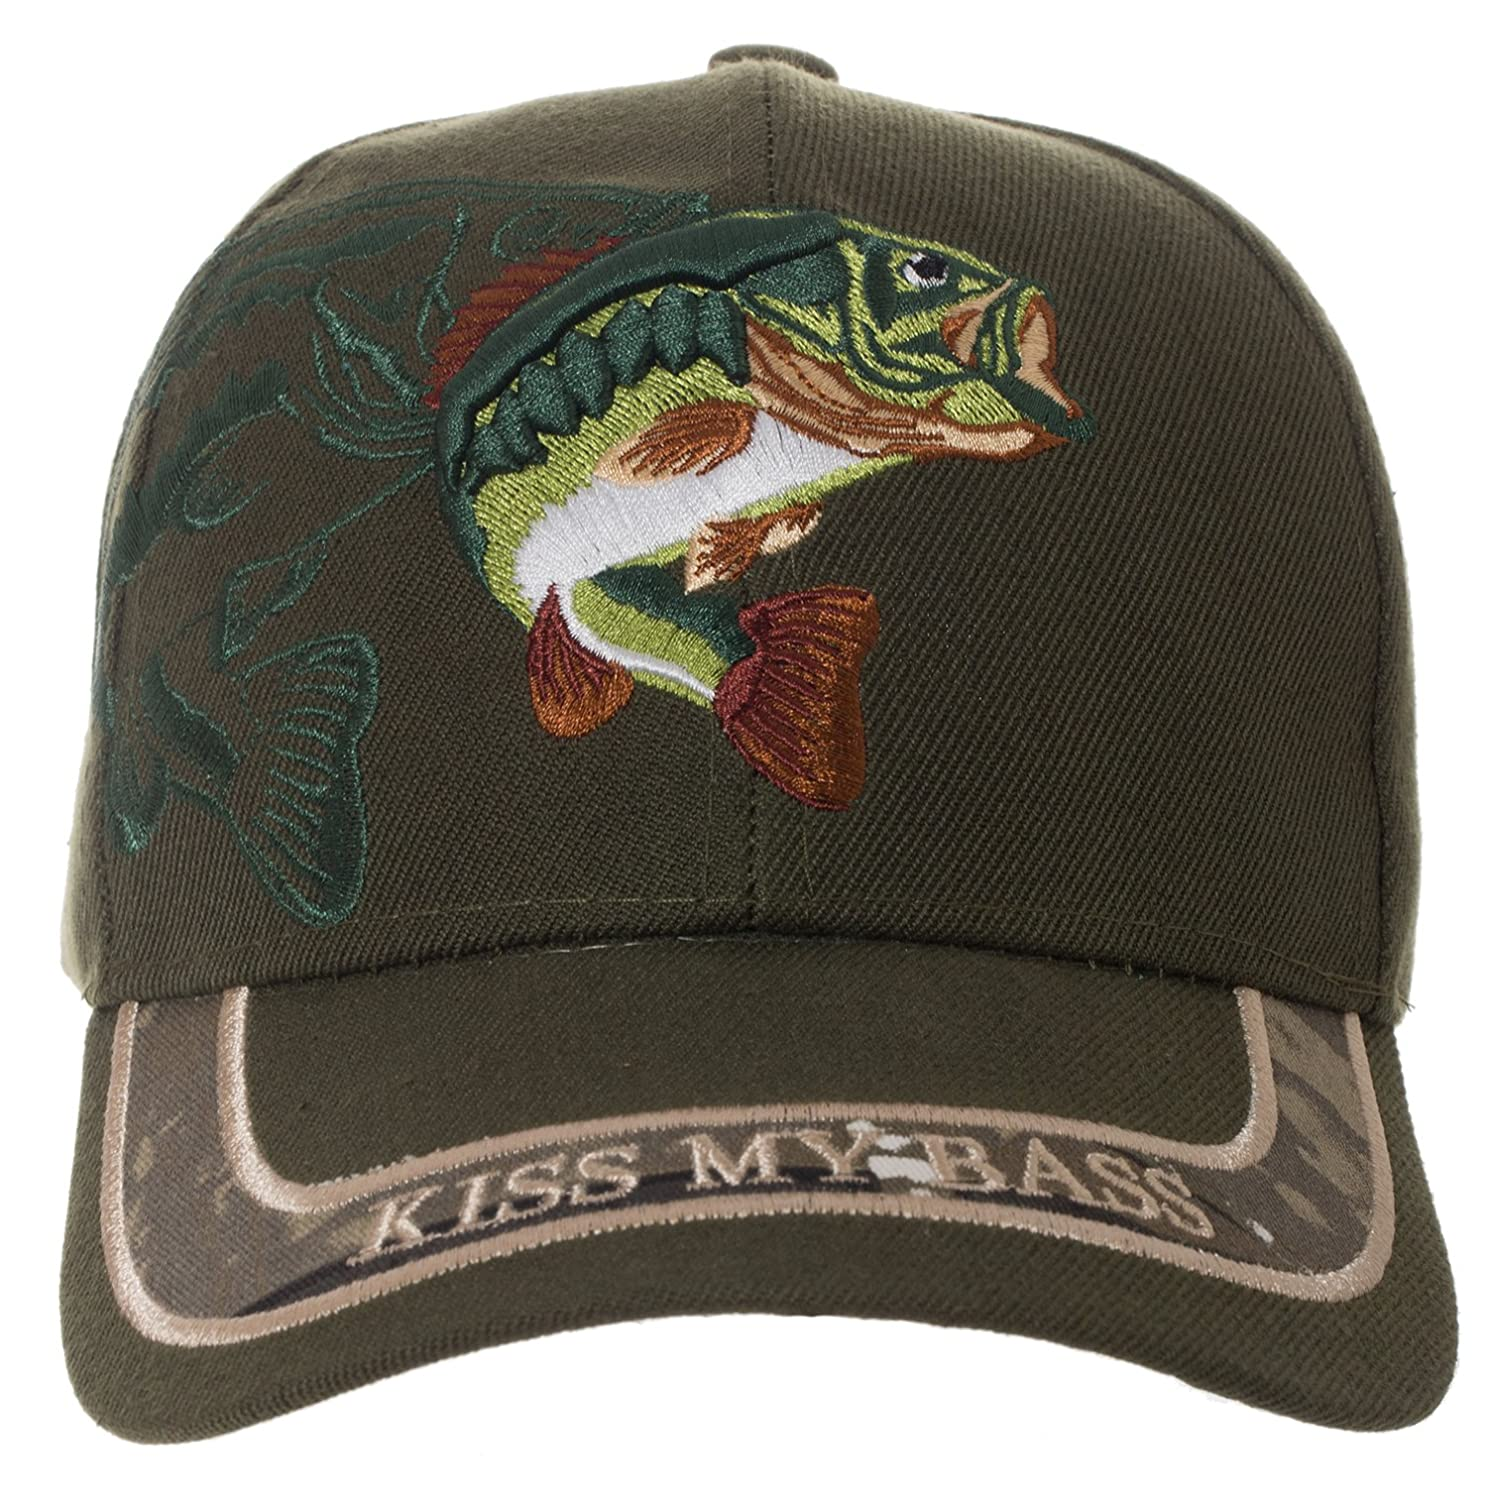 2b138a39089 Amazon.com  Kiss My Bass Hat - Funny Fishing Fisherman Gift -100% Cotton  Embroidered Cap (Black)  Clothing